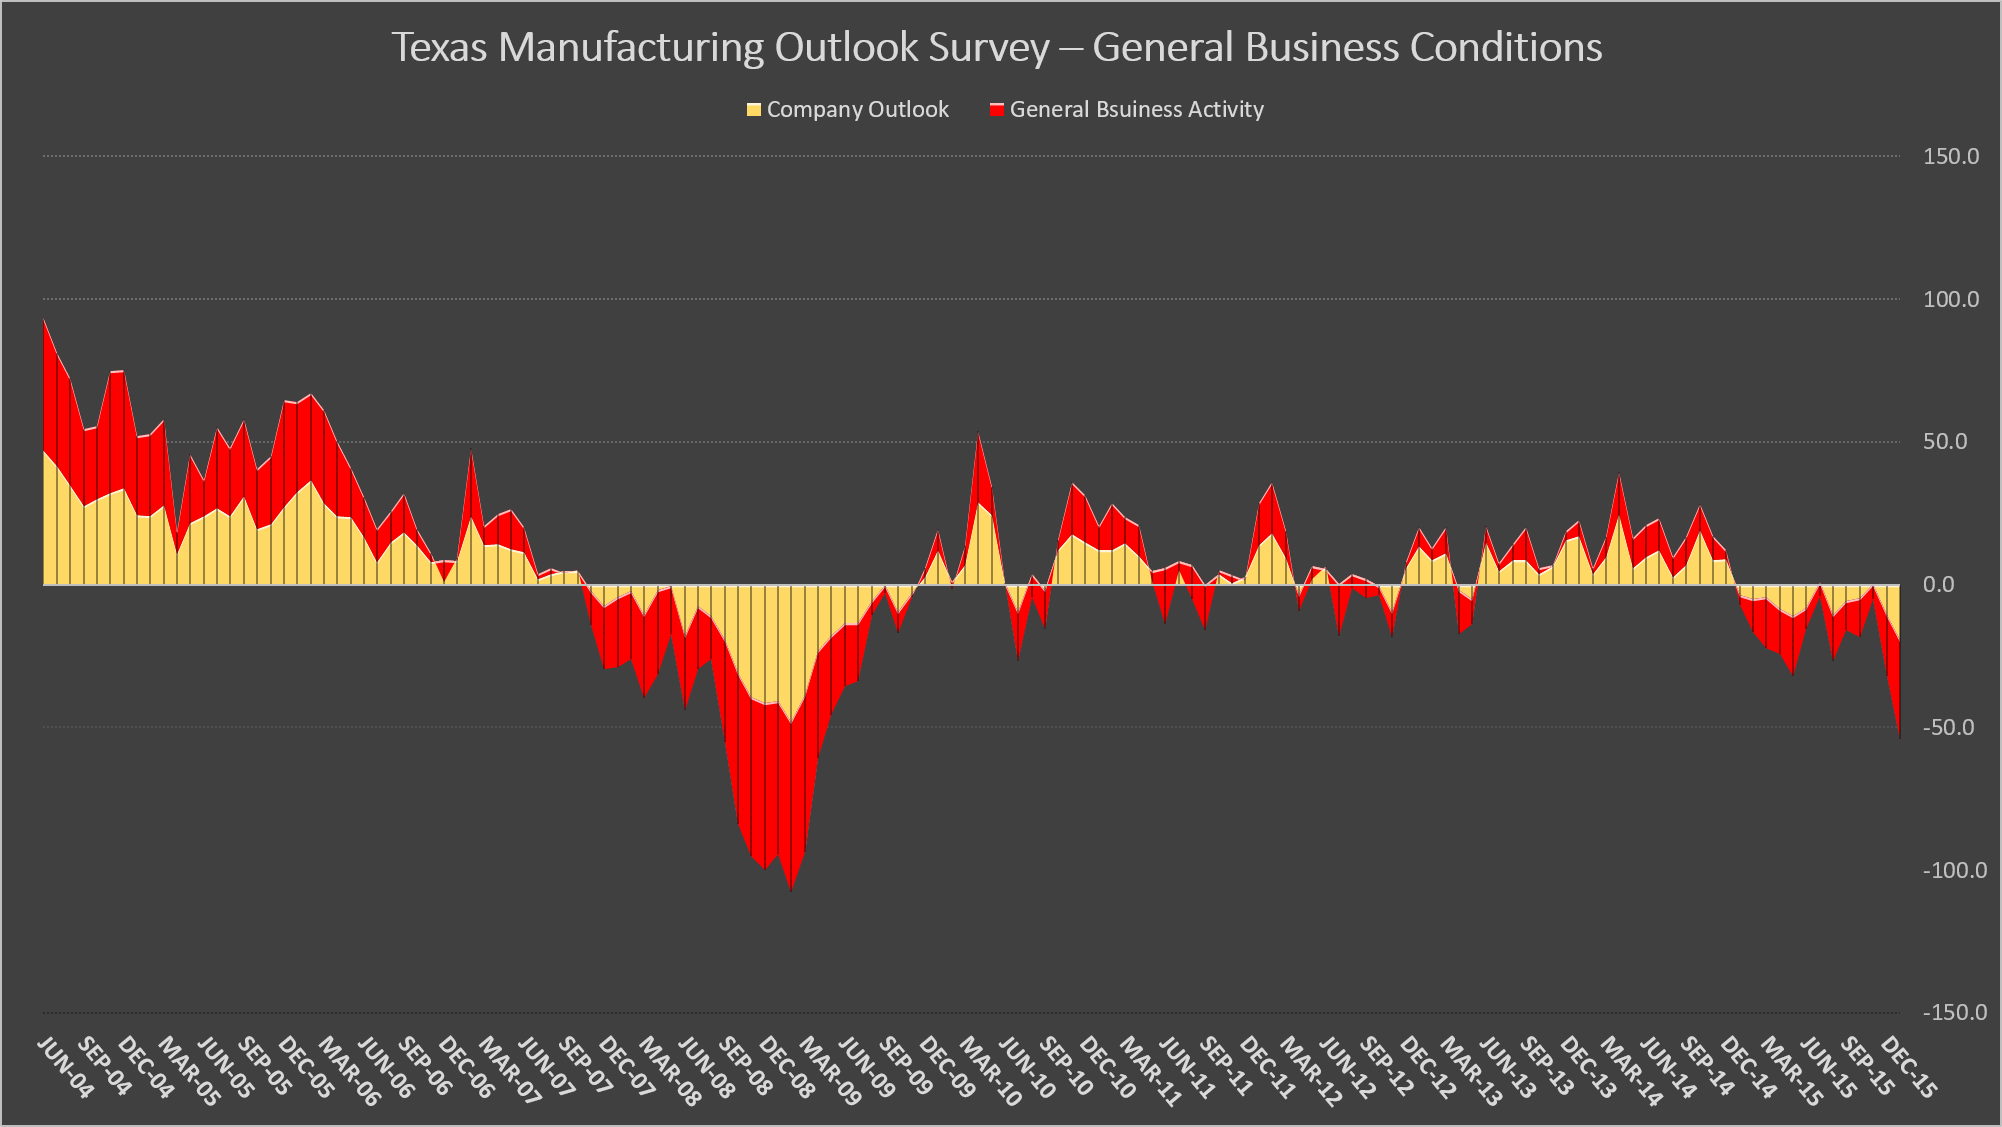 Texas Manufacturing Outlook Survey – General Business Conditions Source: Federal Reserve Bank of Dallas